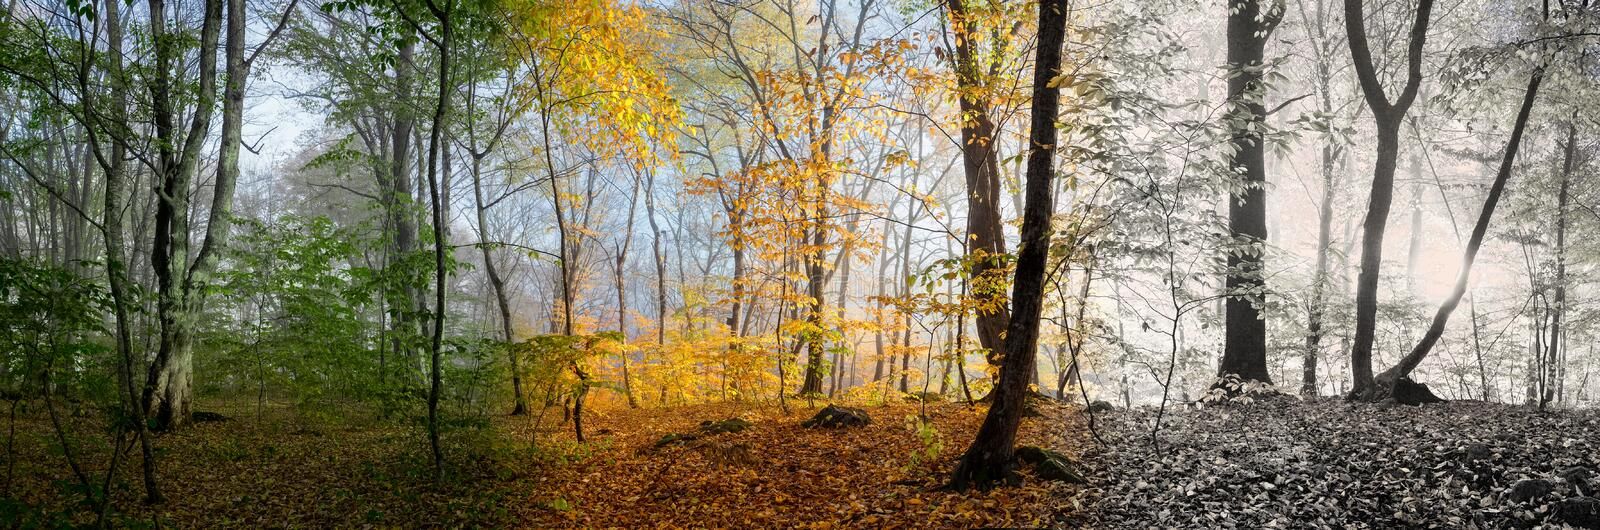 Beautiful morning scene in the forest, Change of three seasons royalty free stock photos